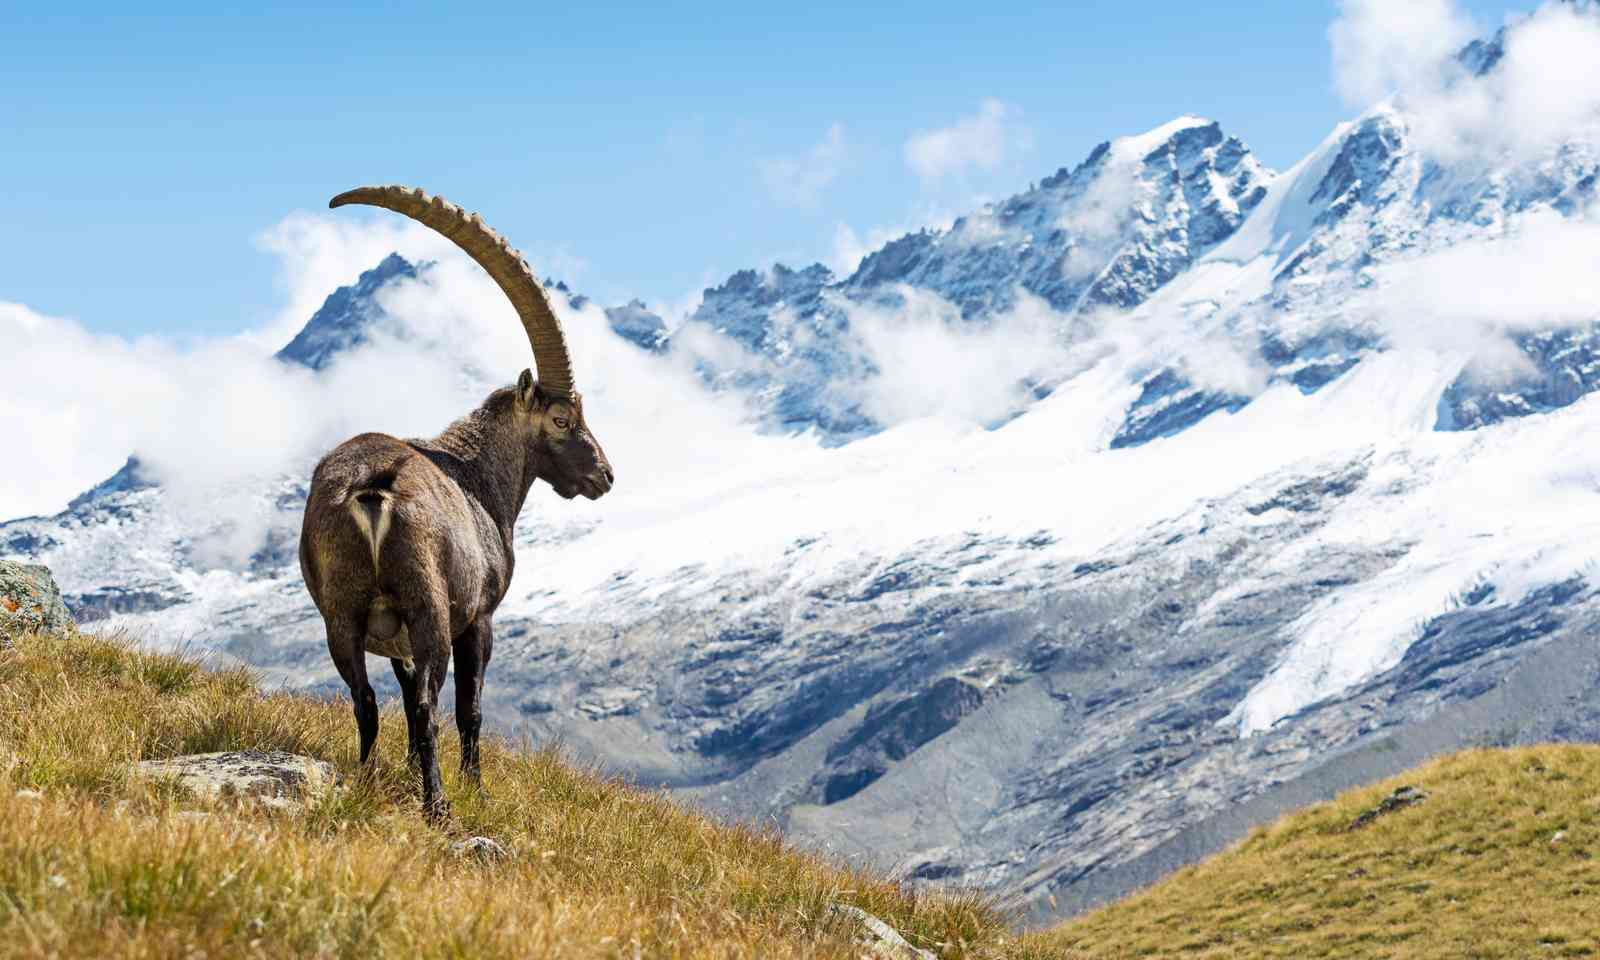 Alpine Ibex in Gran Paradiso National Park (Dreamstime)